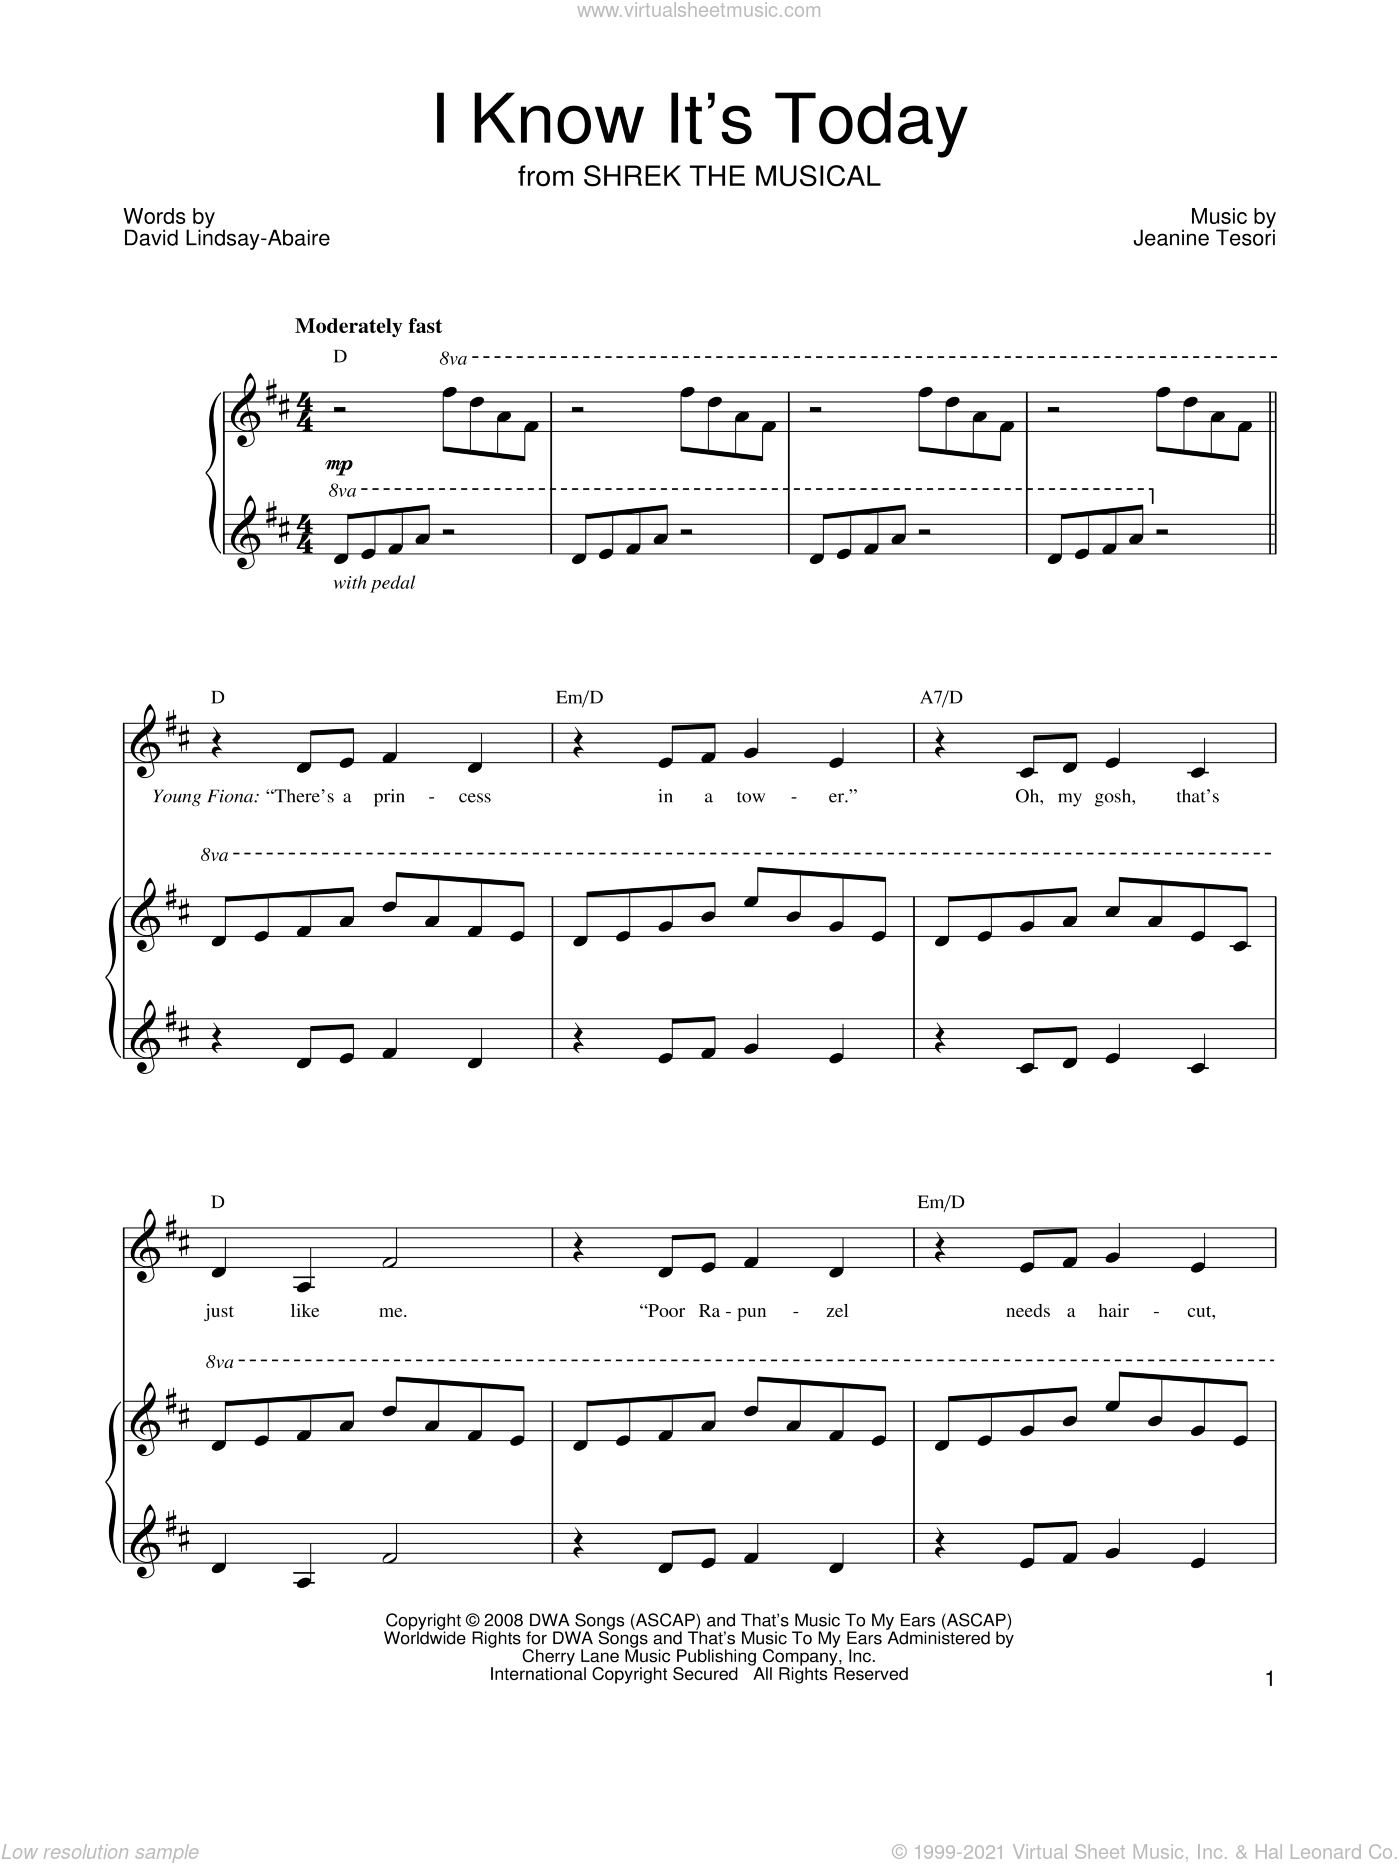 I Know It's Today sheet music for voice, piano or guitar by Shrek The Musical, David Lindsay-Abaire and Jeanine Tesori. Score Image Preview.